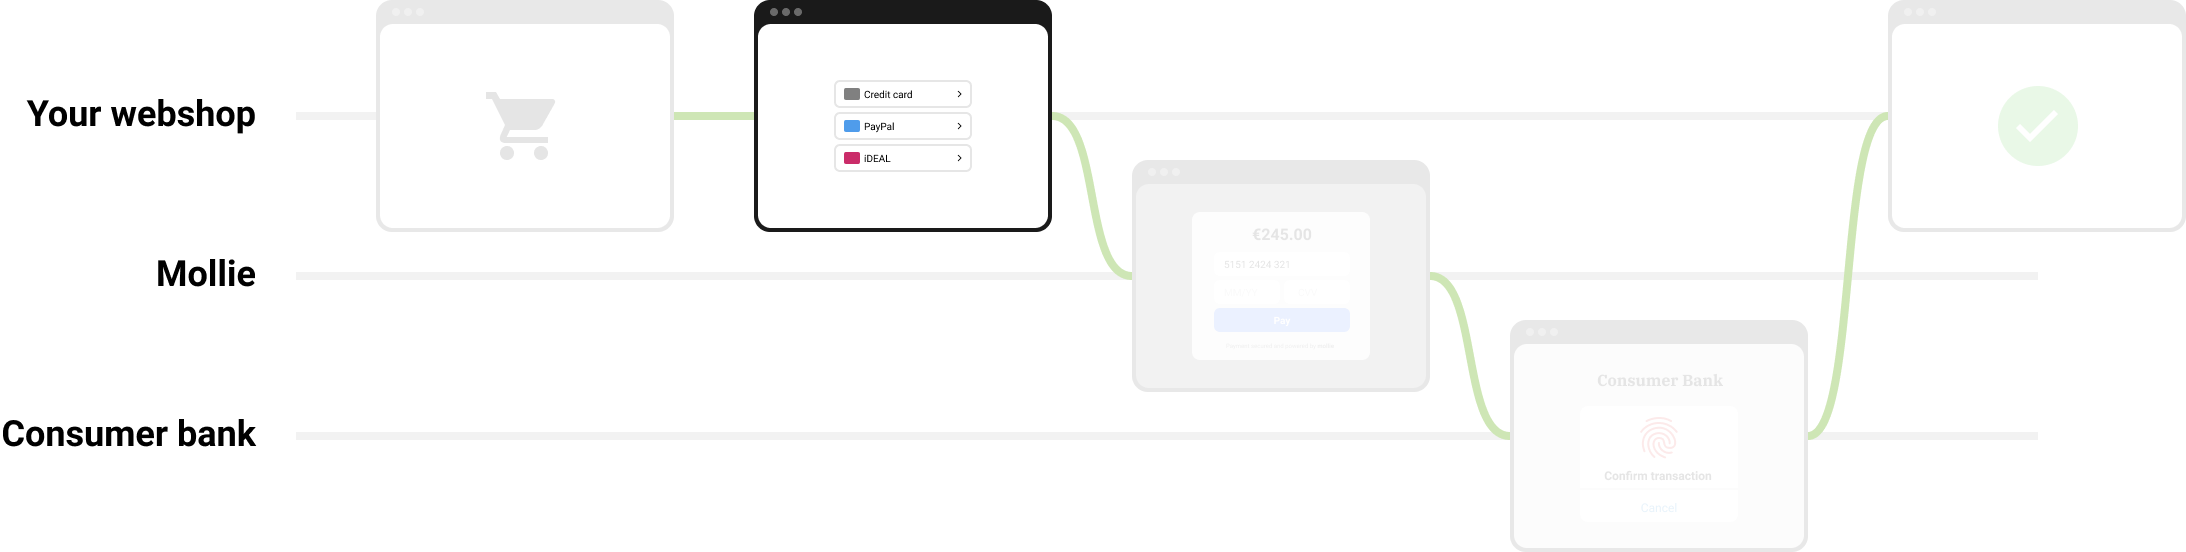 https://assets.docs.mollie.com/_images/checkout-flow-embedded-method-selection@2x.png